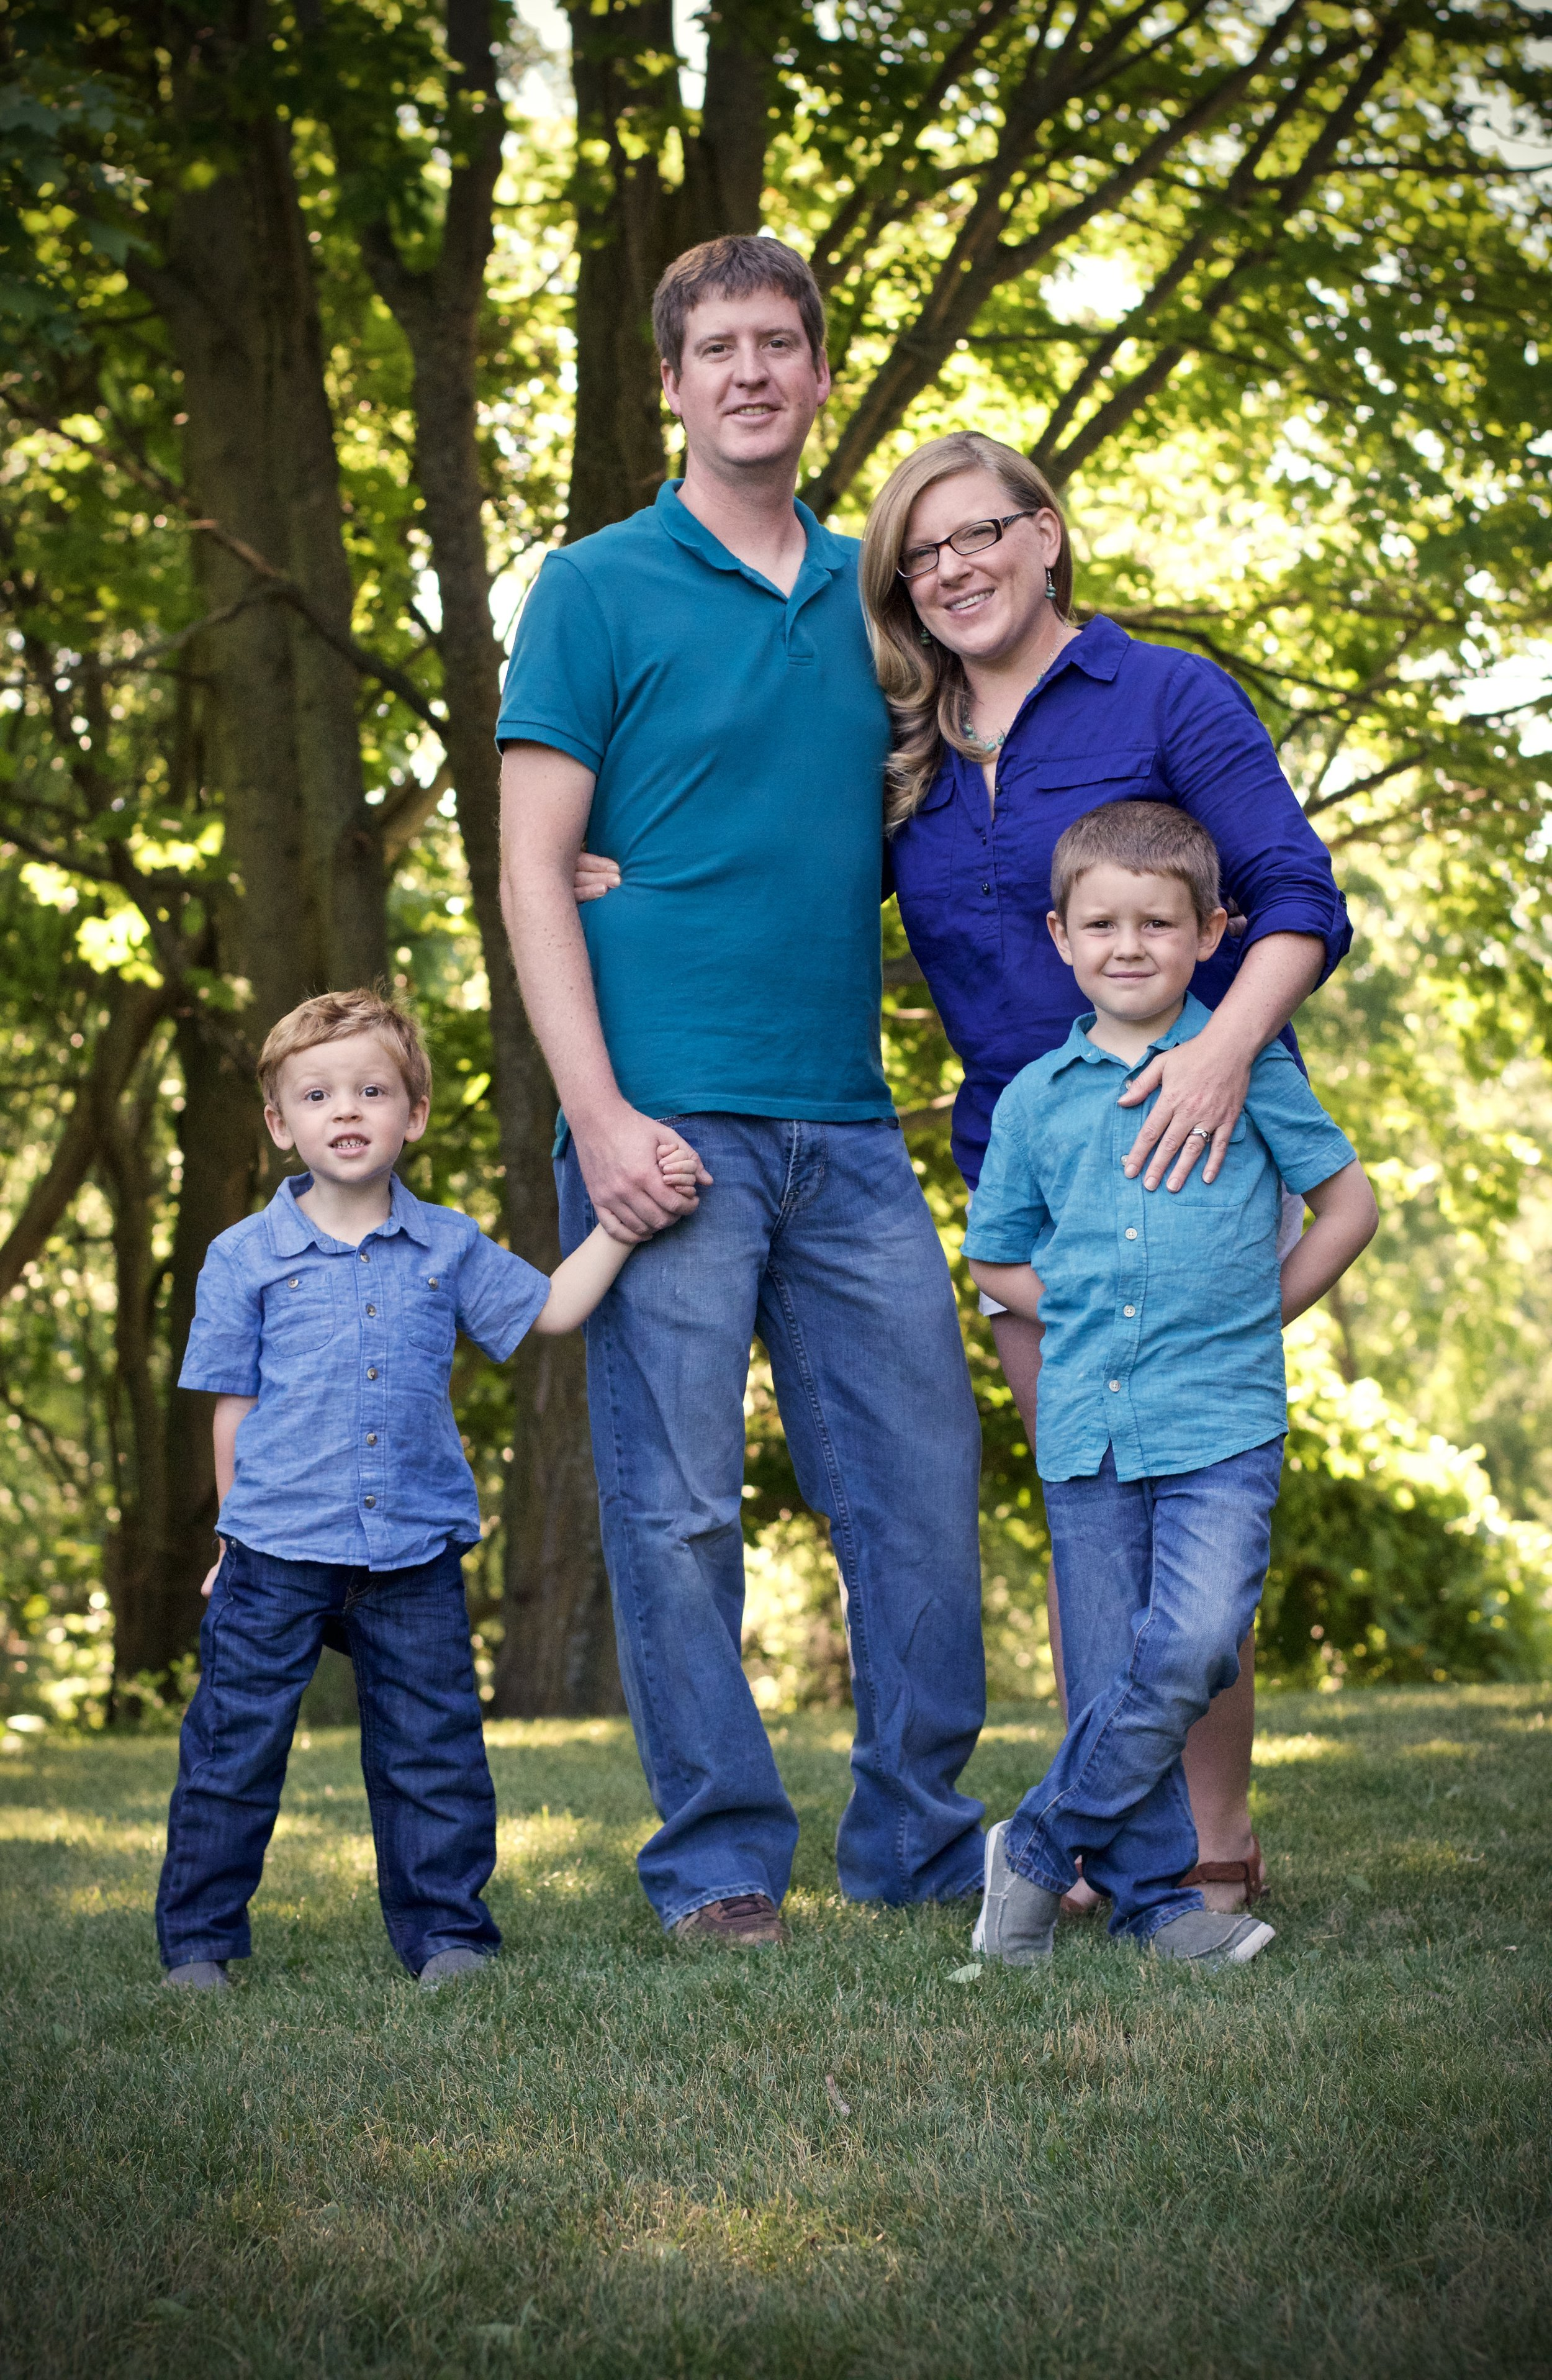 About Cmb Construction - Colin Bushong and his wife Jeanie live in beautiful Traverse City, Michigan with their two boys - Liam and Kellen. Colin is a second generation custom home builder in Northern Michigan. When he does have some spare time, he enjoys hiking, biking, boating, camping and skiing.